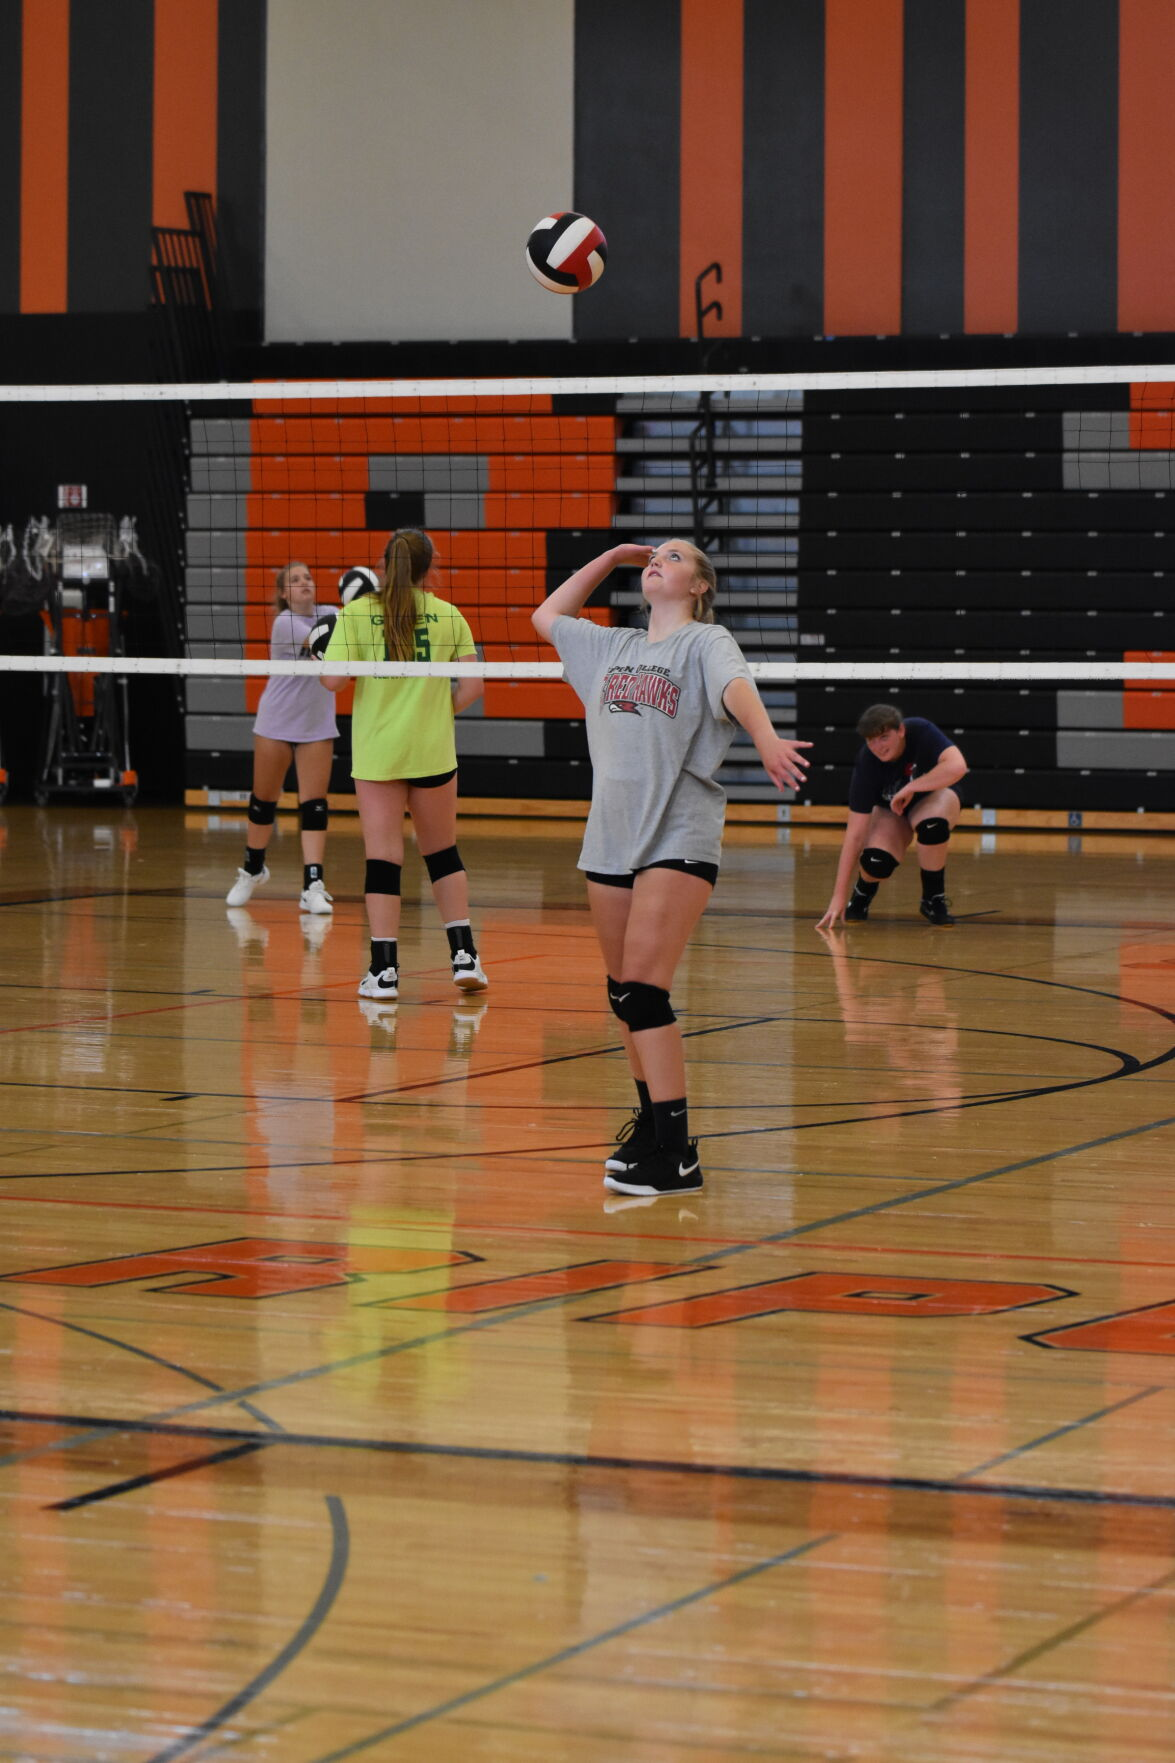 Ripon High School Volleyball First Day of Practice 2021 (1).JPG